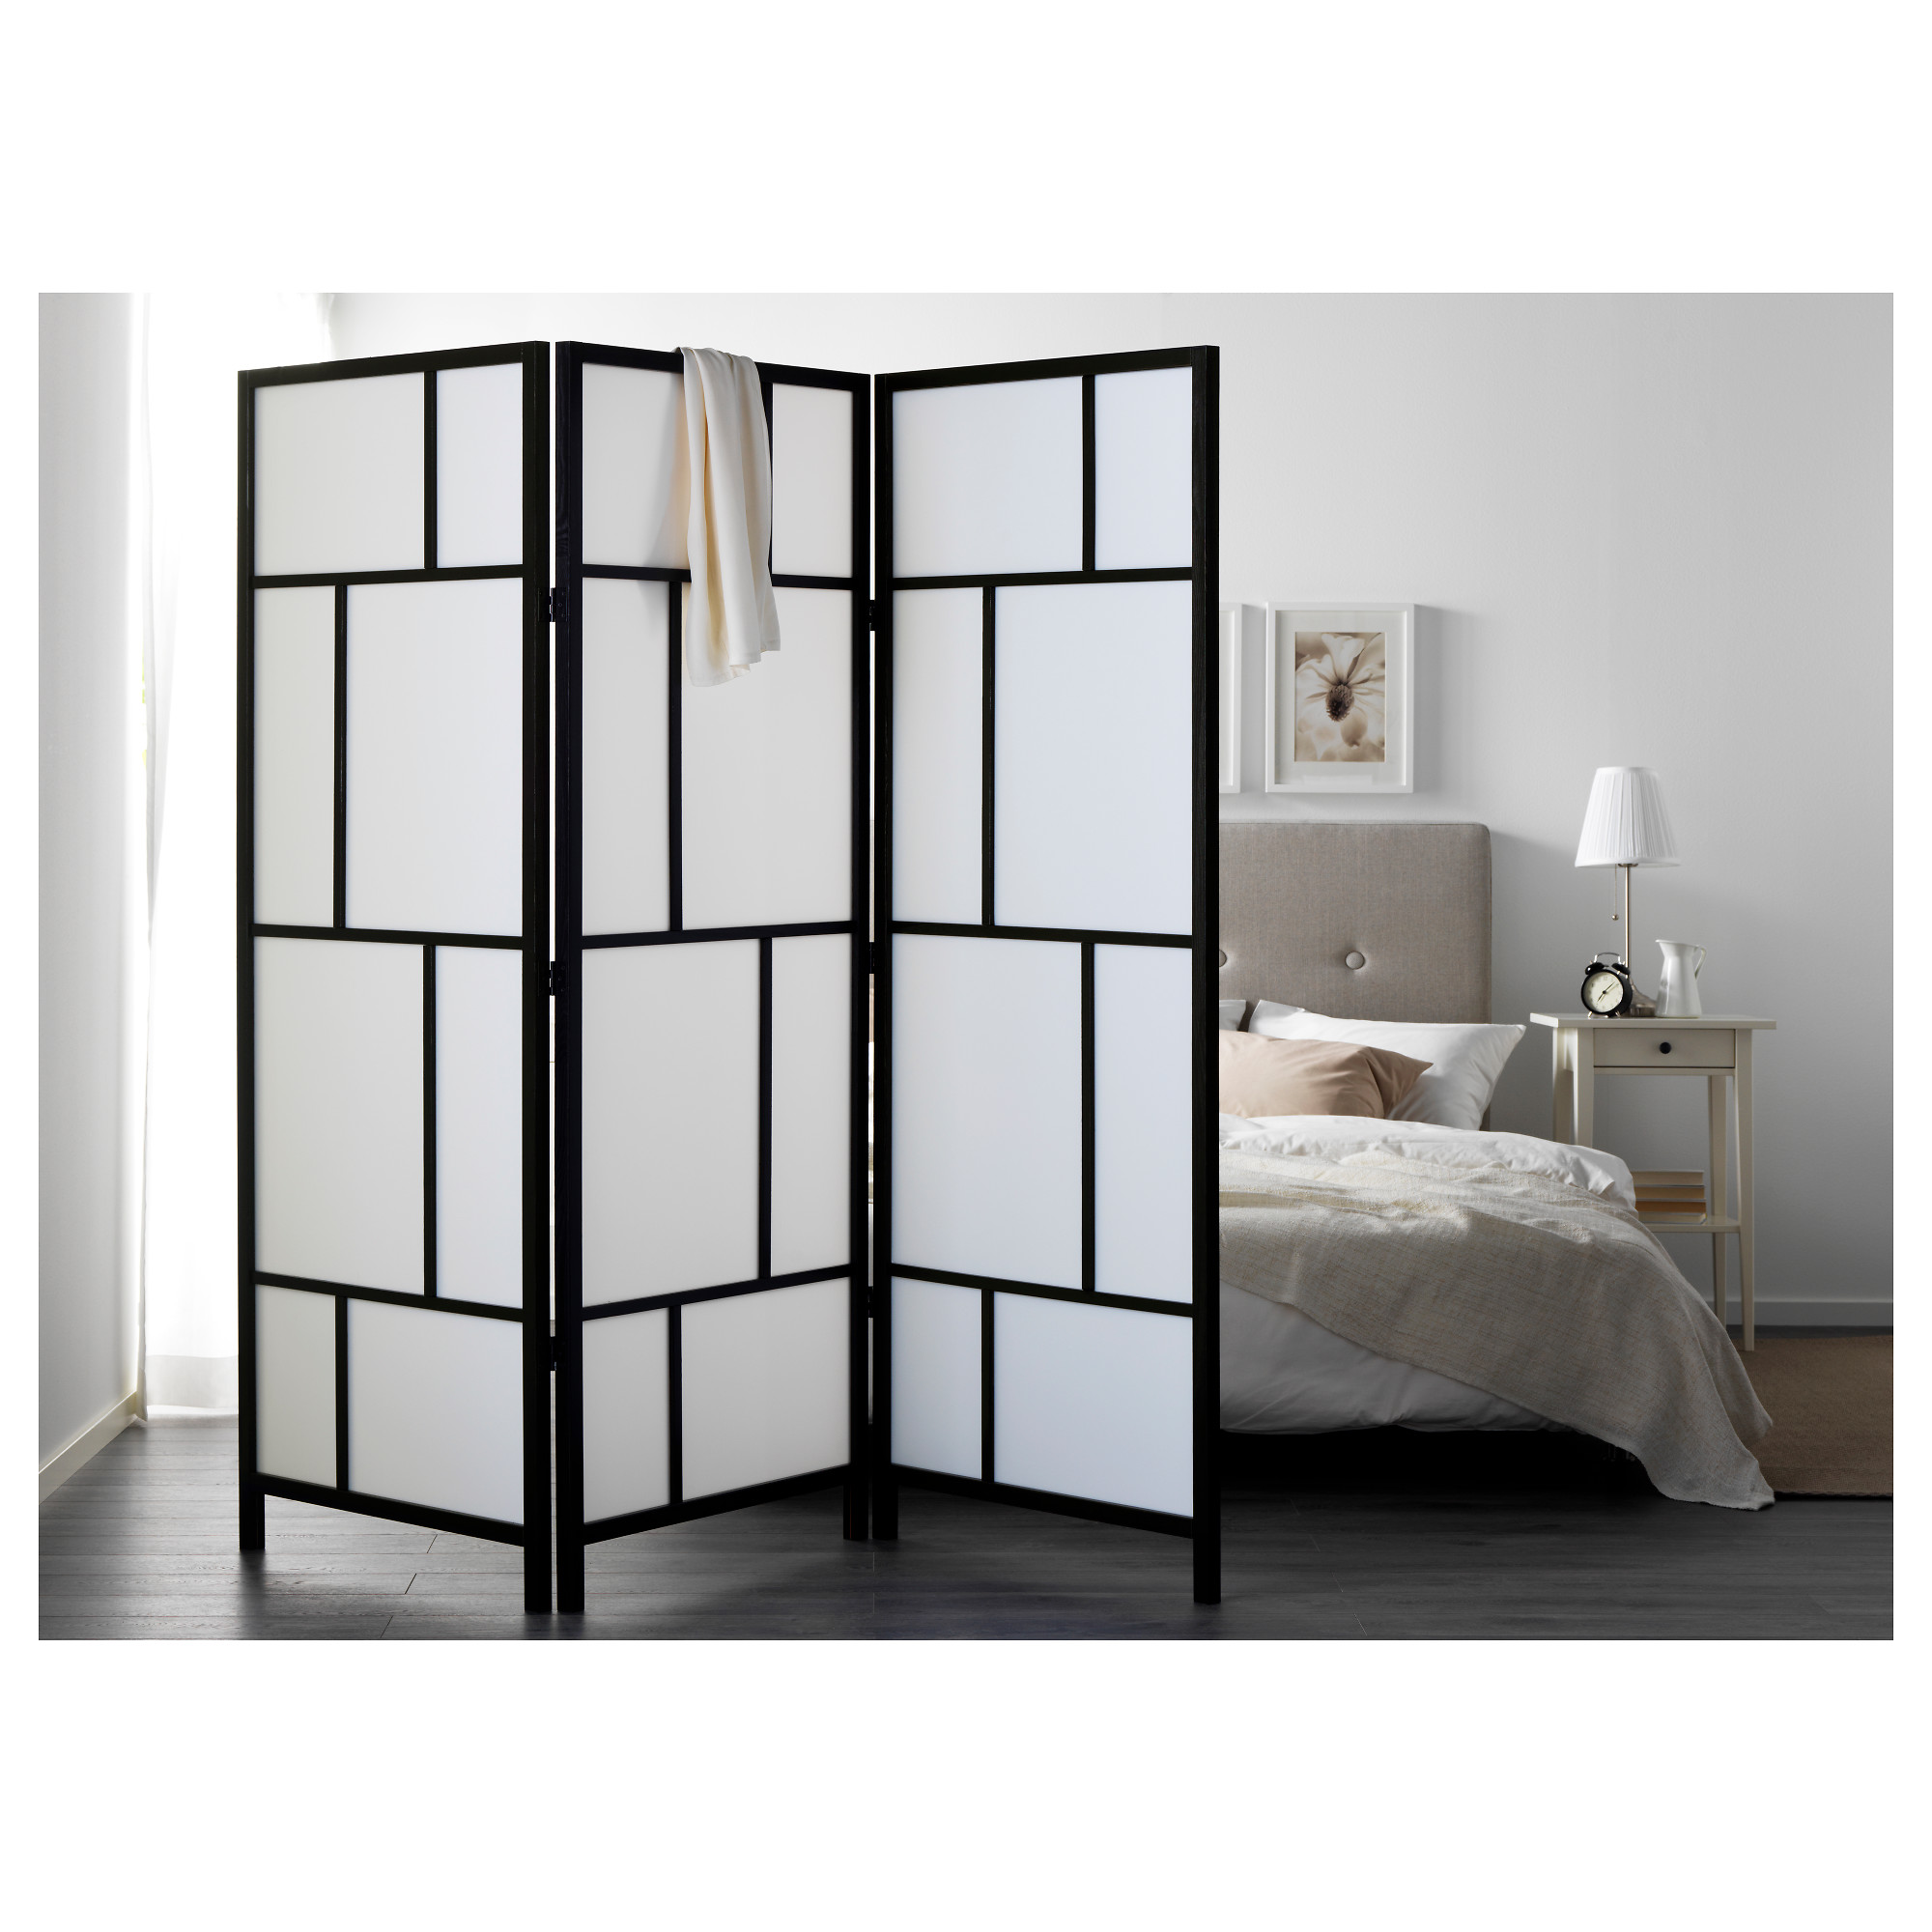 Room Separator Screen | Room Separators Ikea | Room Dividers Hobby Lobby